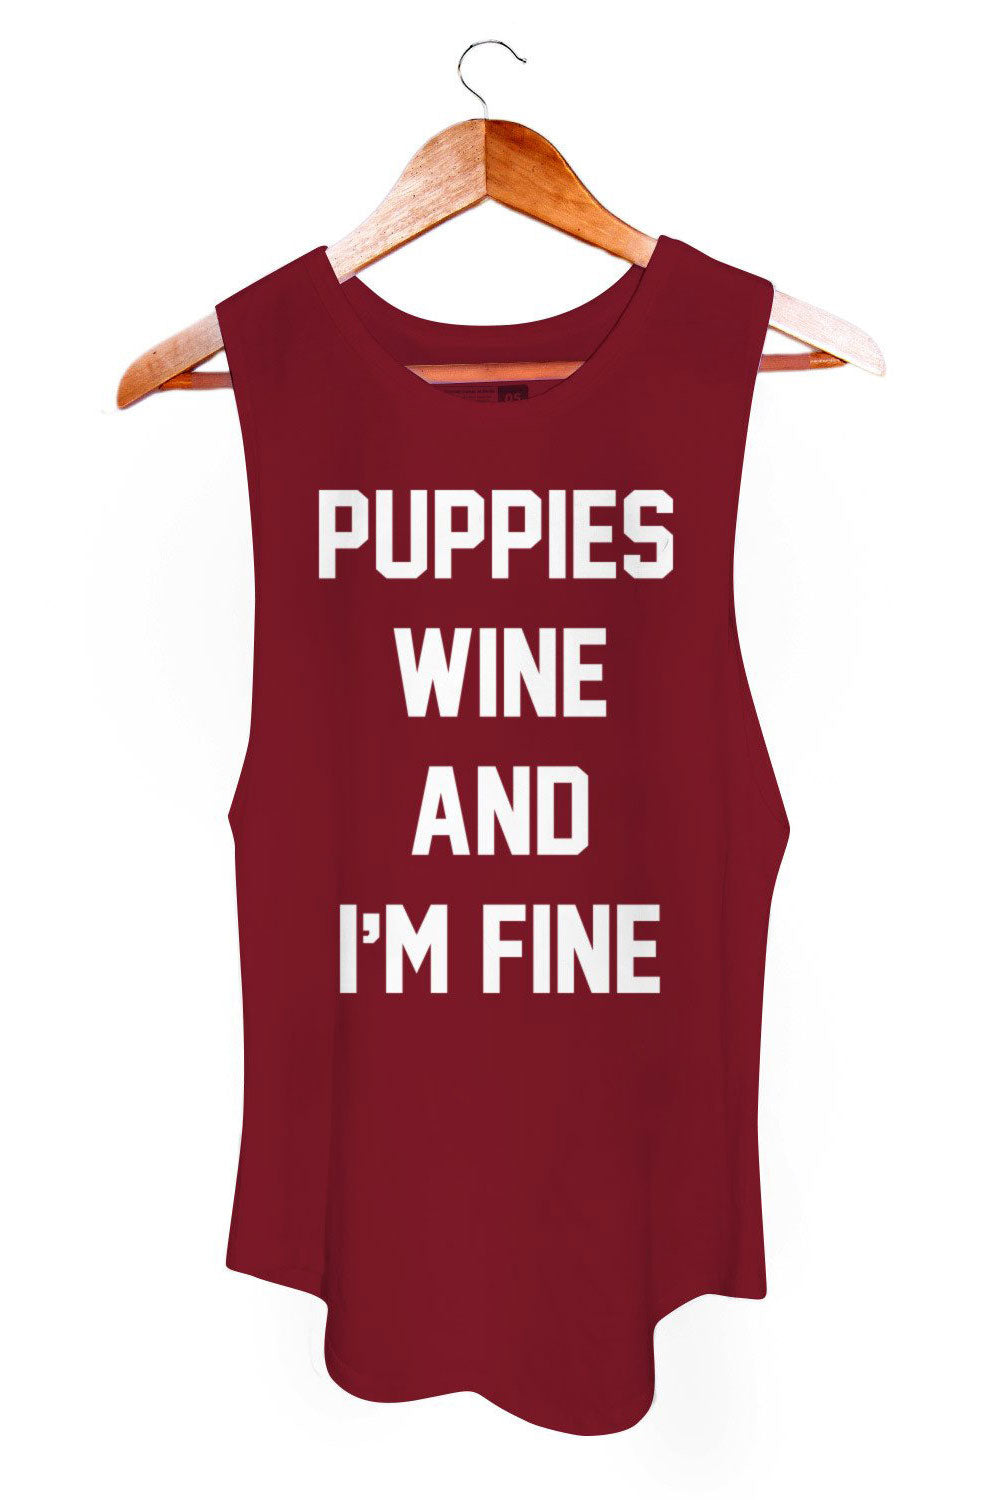 Puppies Make Me Happy Puppies, Wine And I'm Fine Sleeveless - Sculptique